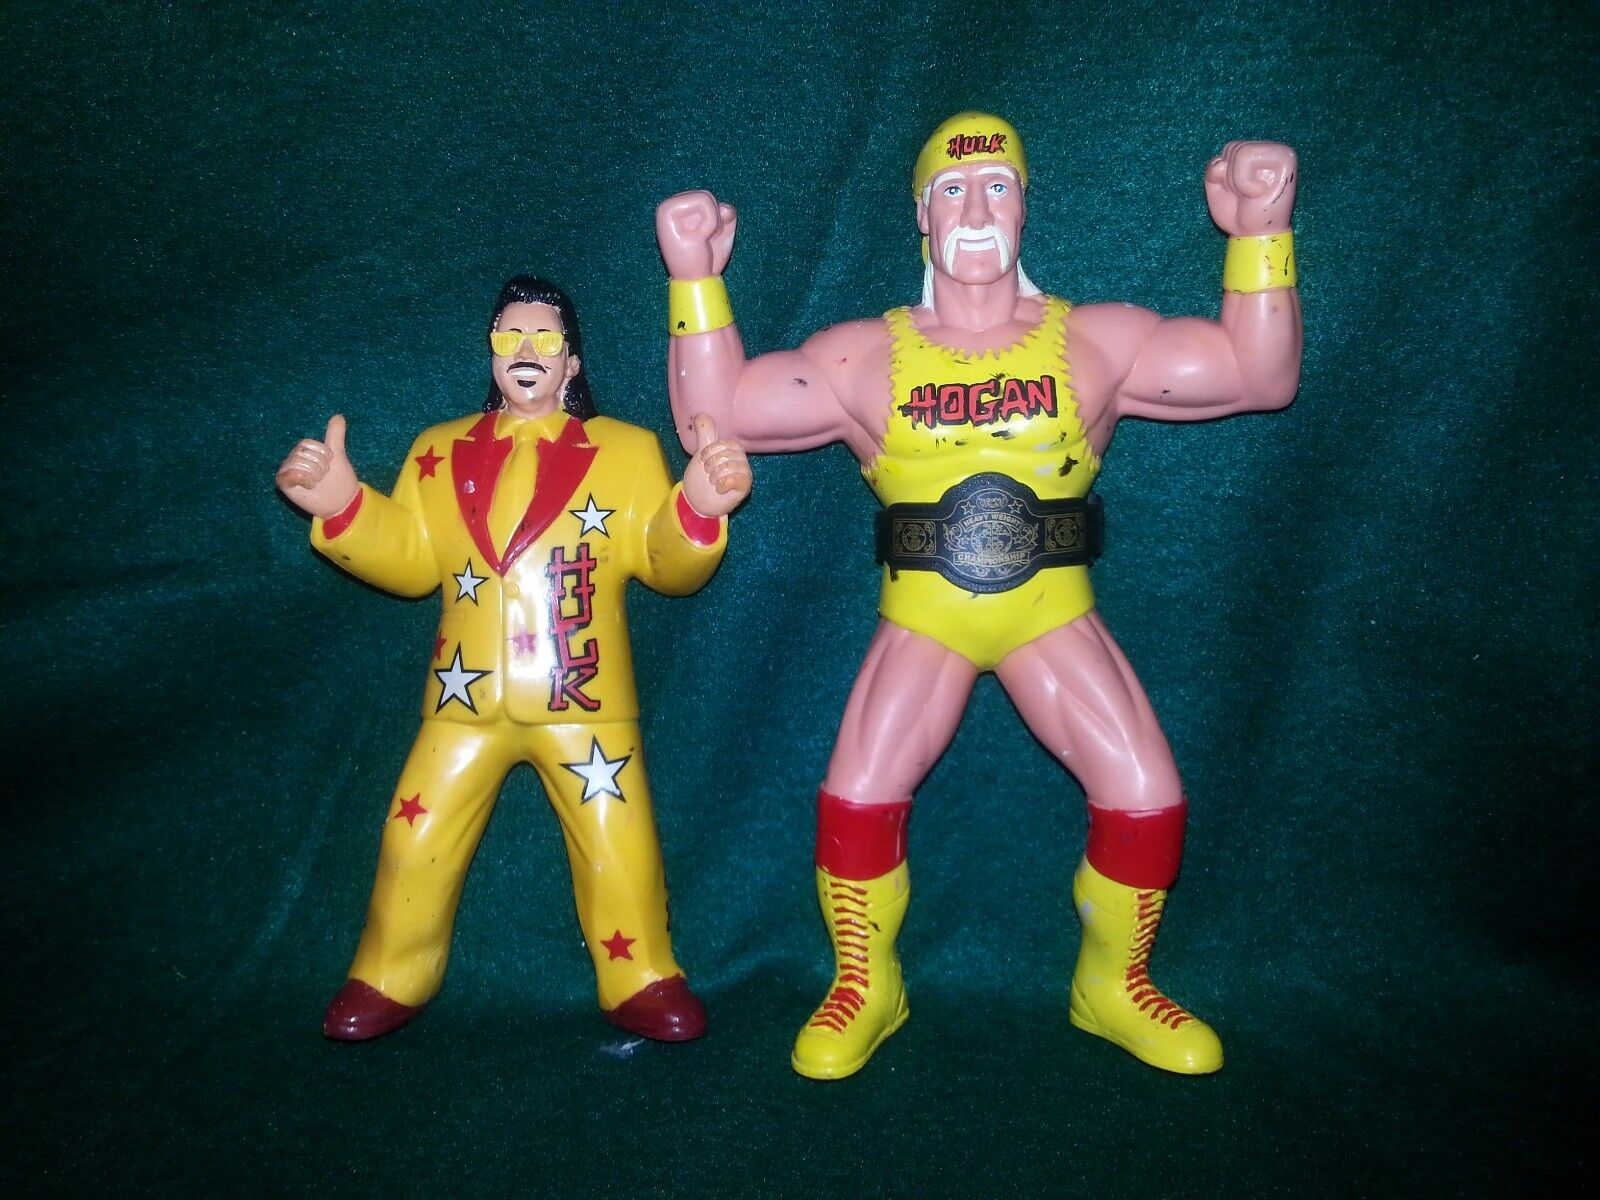 WCW Toymakers Complete Series 1 Figures Sting, Hogan, Flair 11 Total Figures